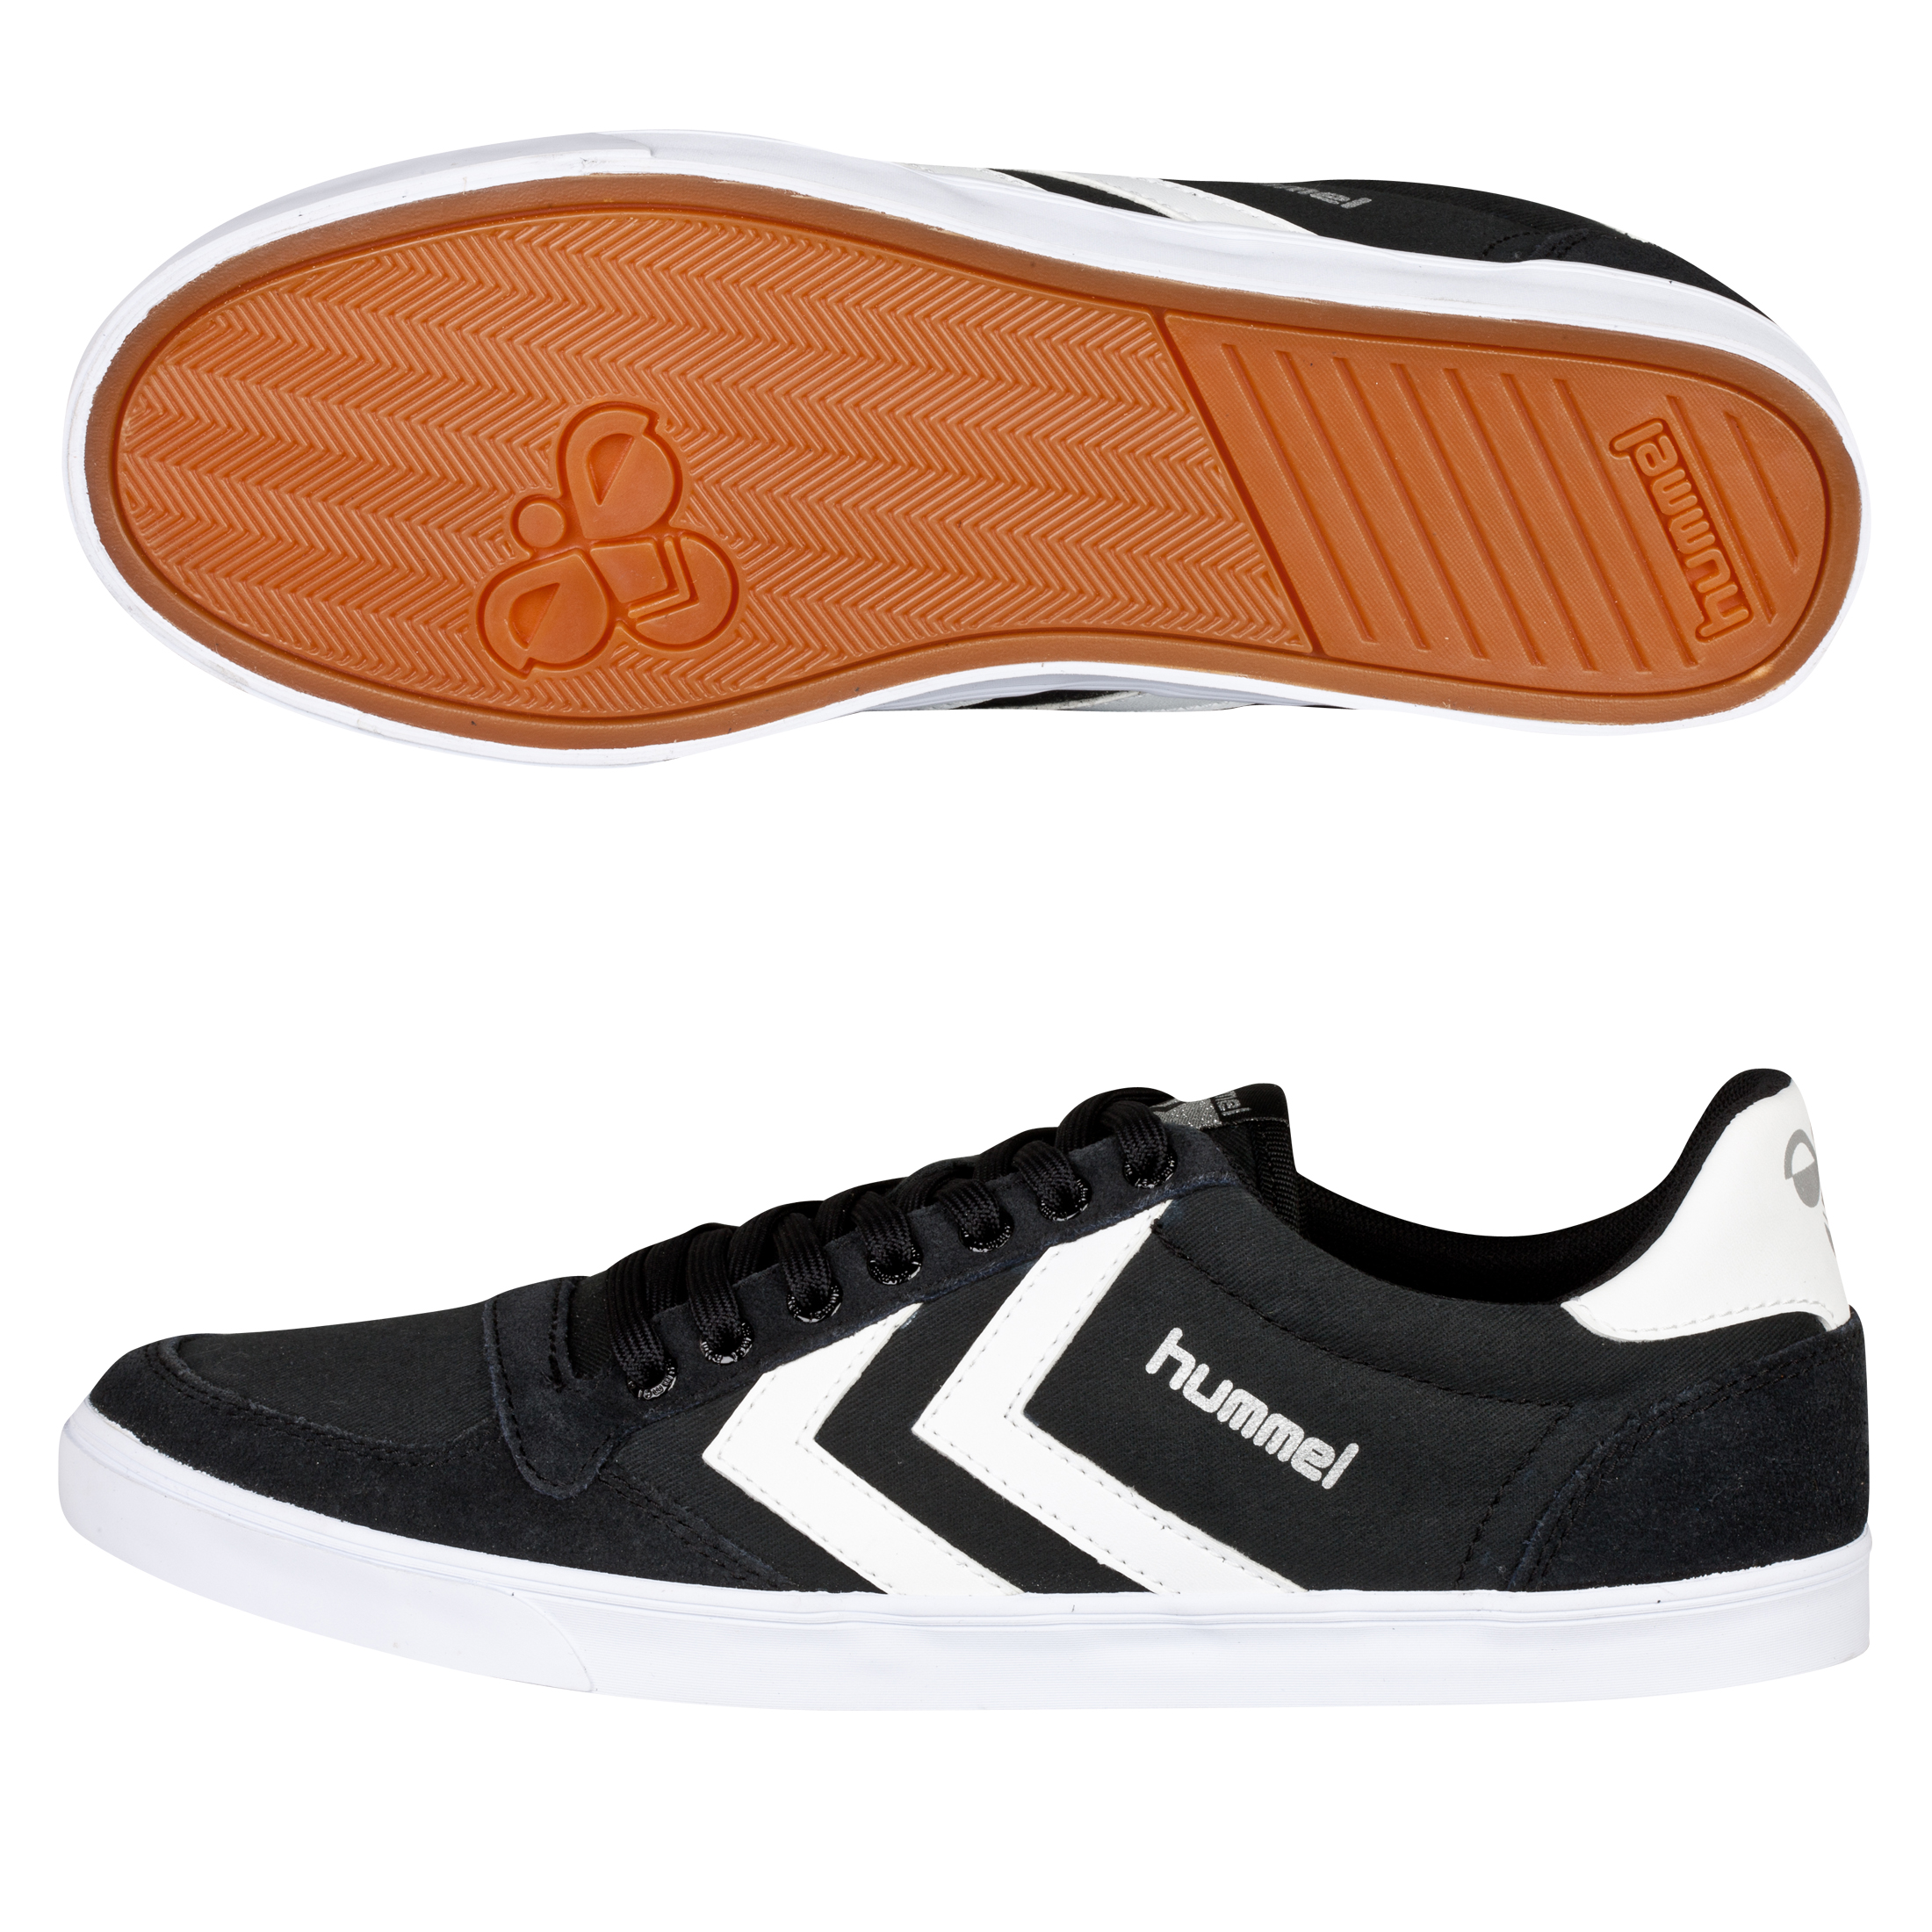 Hummel Slimmer Stadil Low Canvas Trainers - Black/White